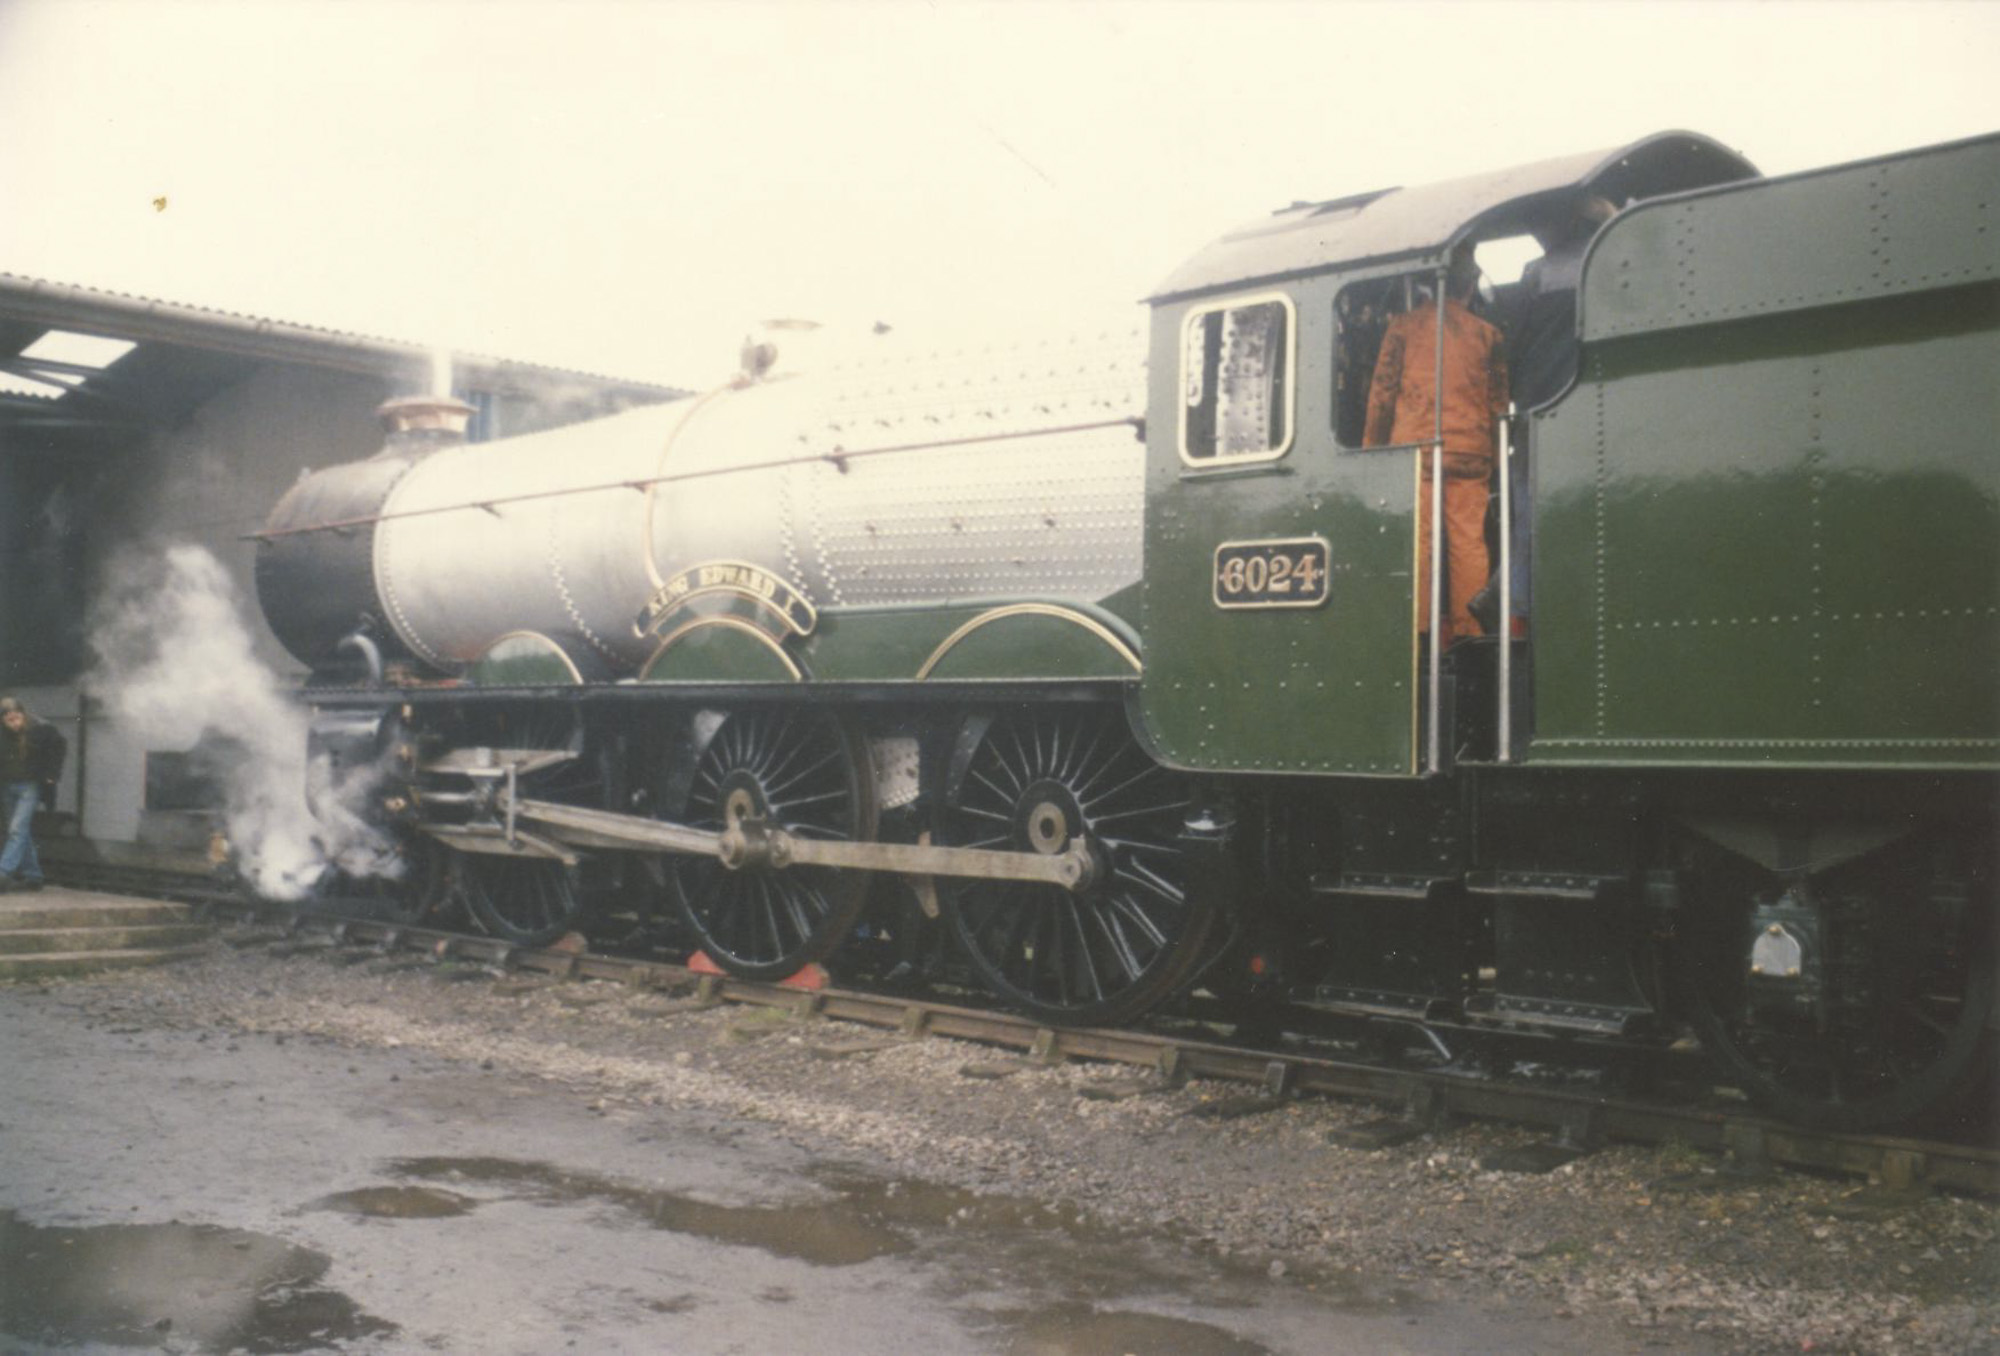 No. 6024 in steam for the first time in preservation, 2 February 1989. © Chris Brown